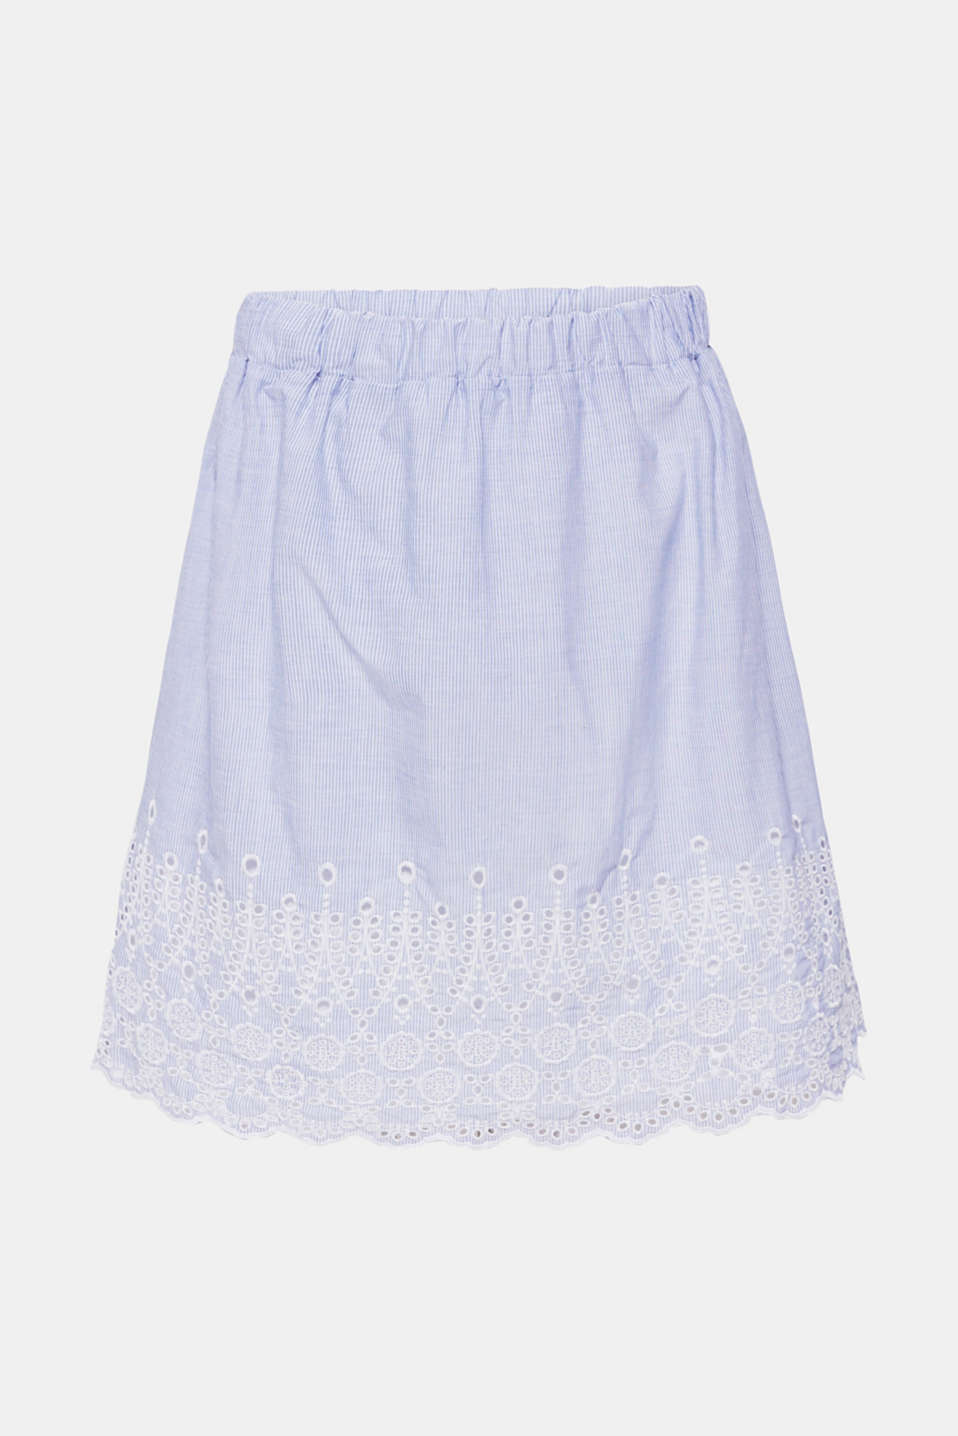 Broderie anglaise detail skirt, 100% cotton, LIGHT BLUE, detail image number 5